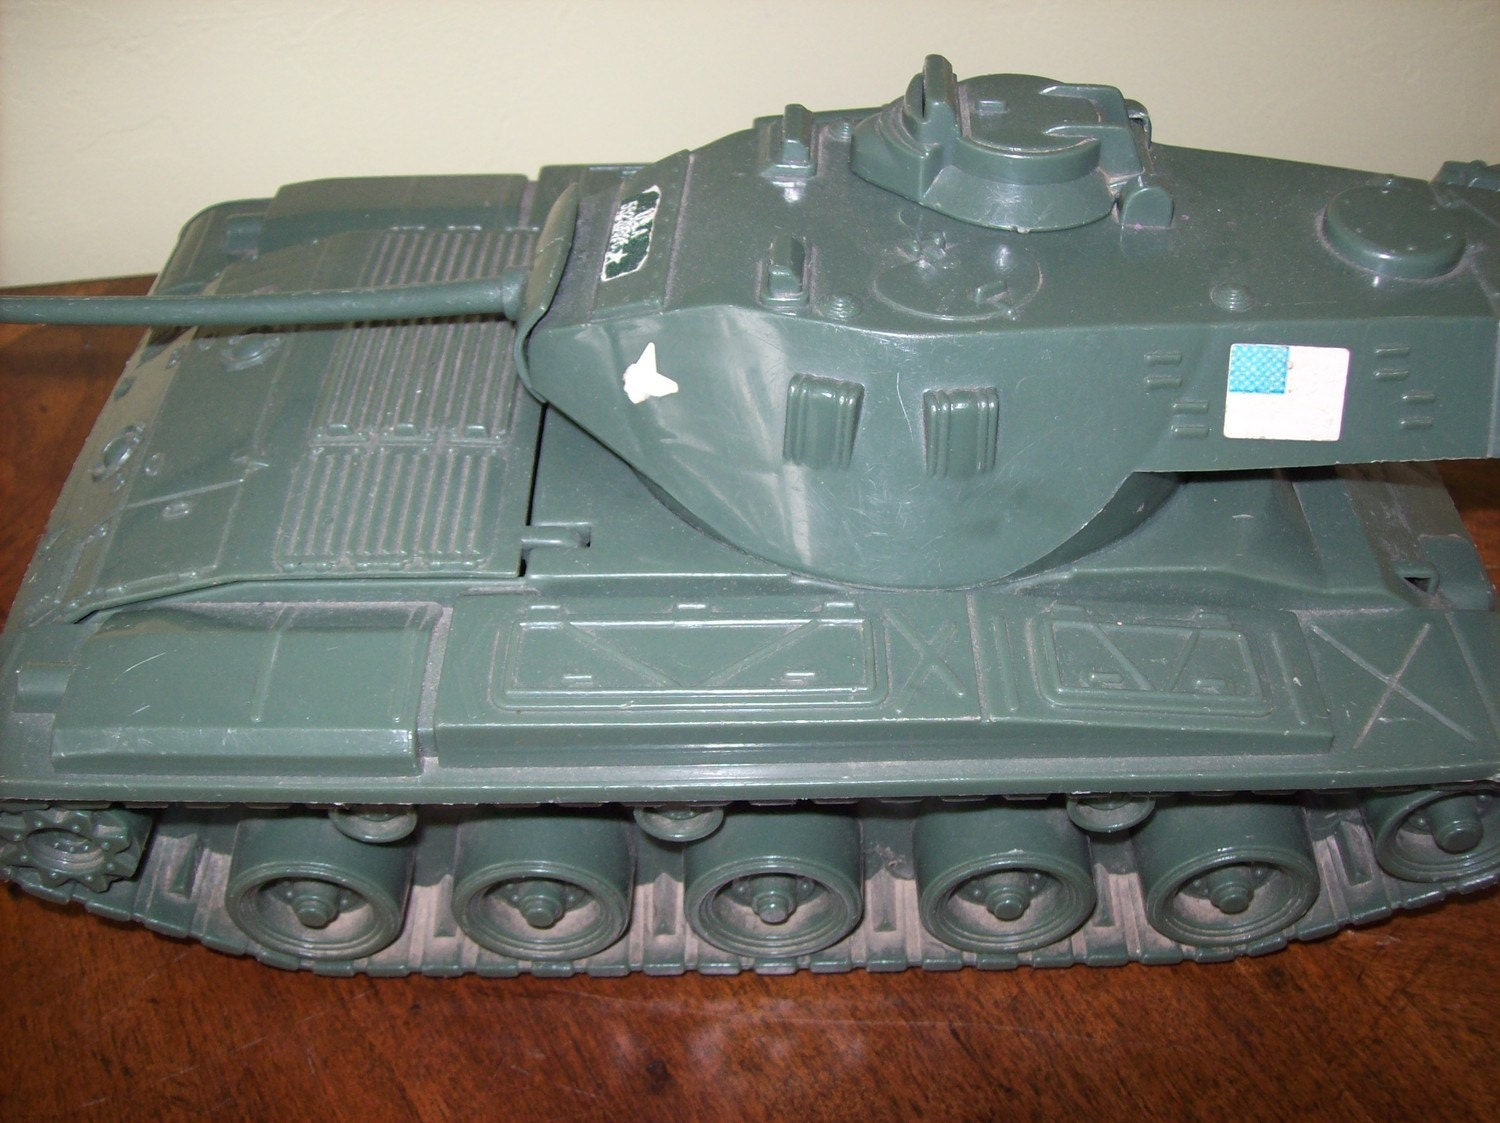 Sale 6 Vintage Toy Army Tank Plastic Made In Usa Was 8 00